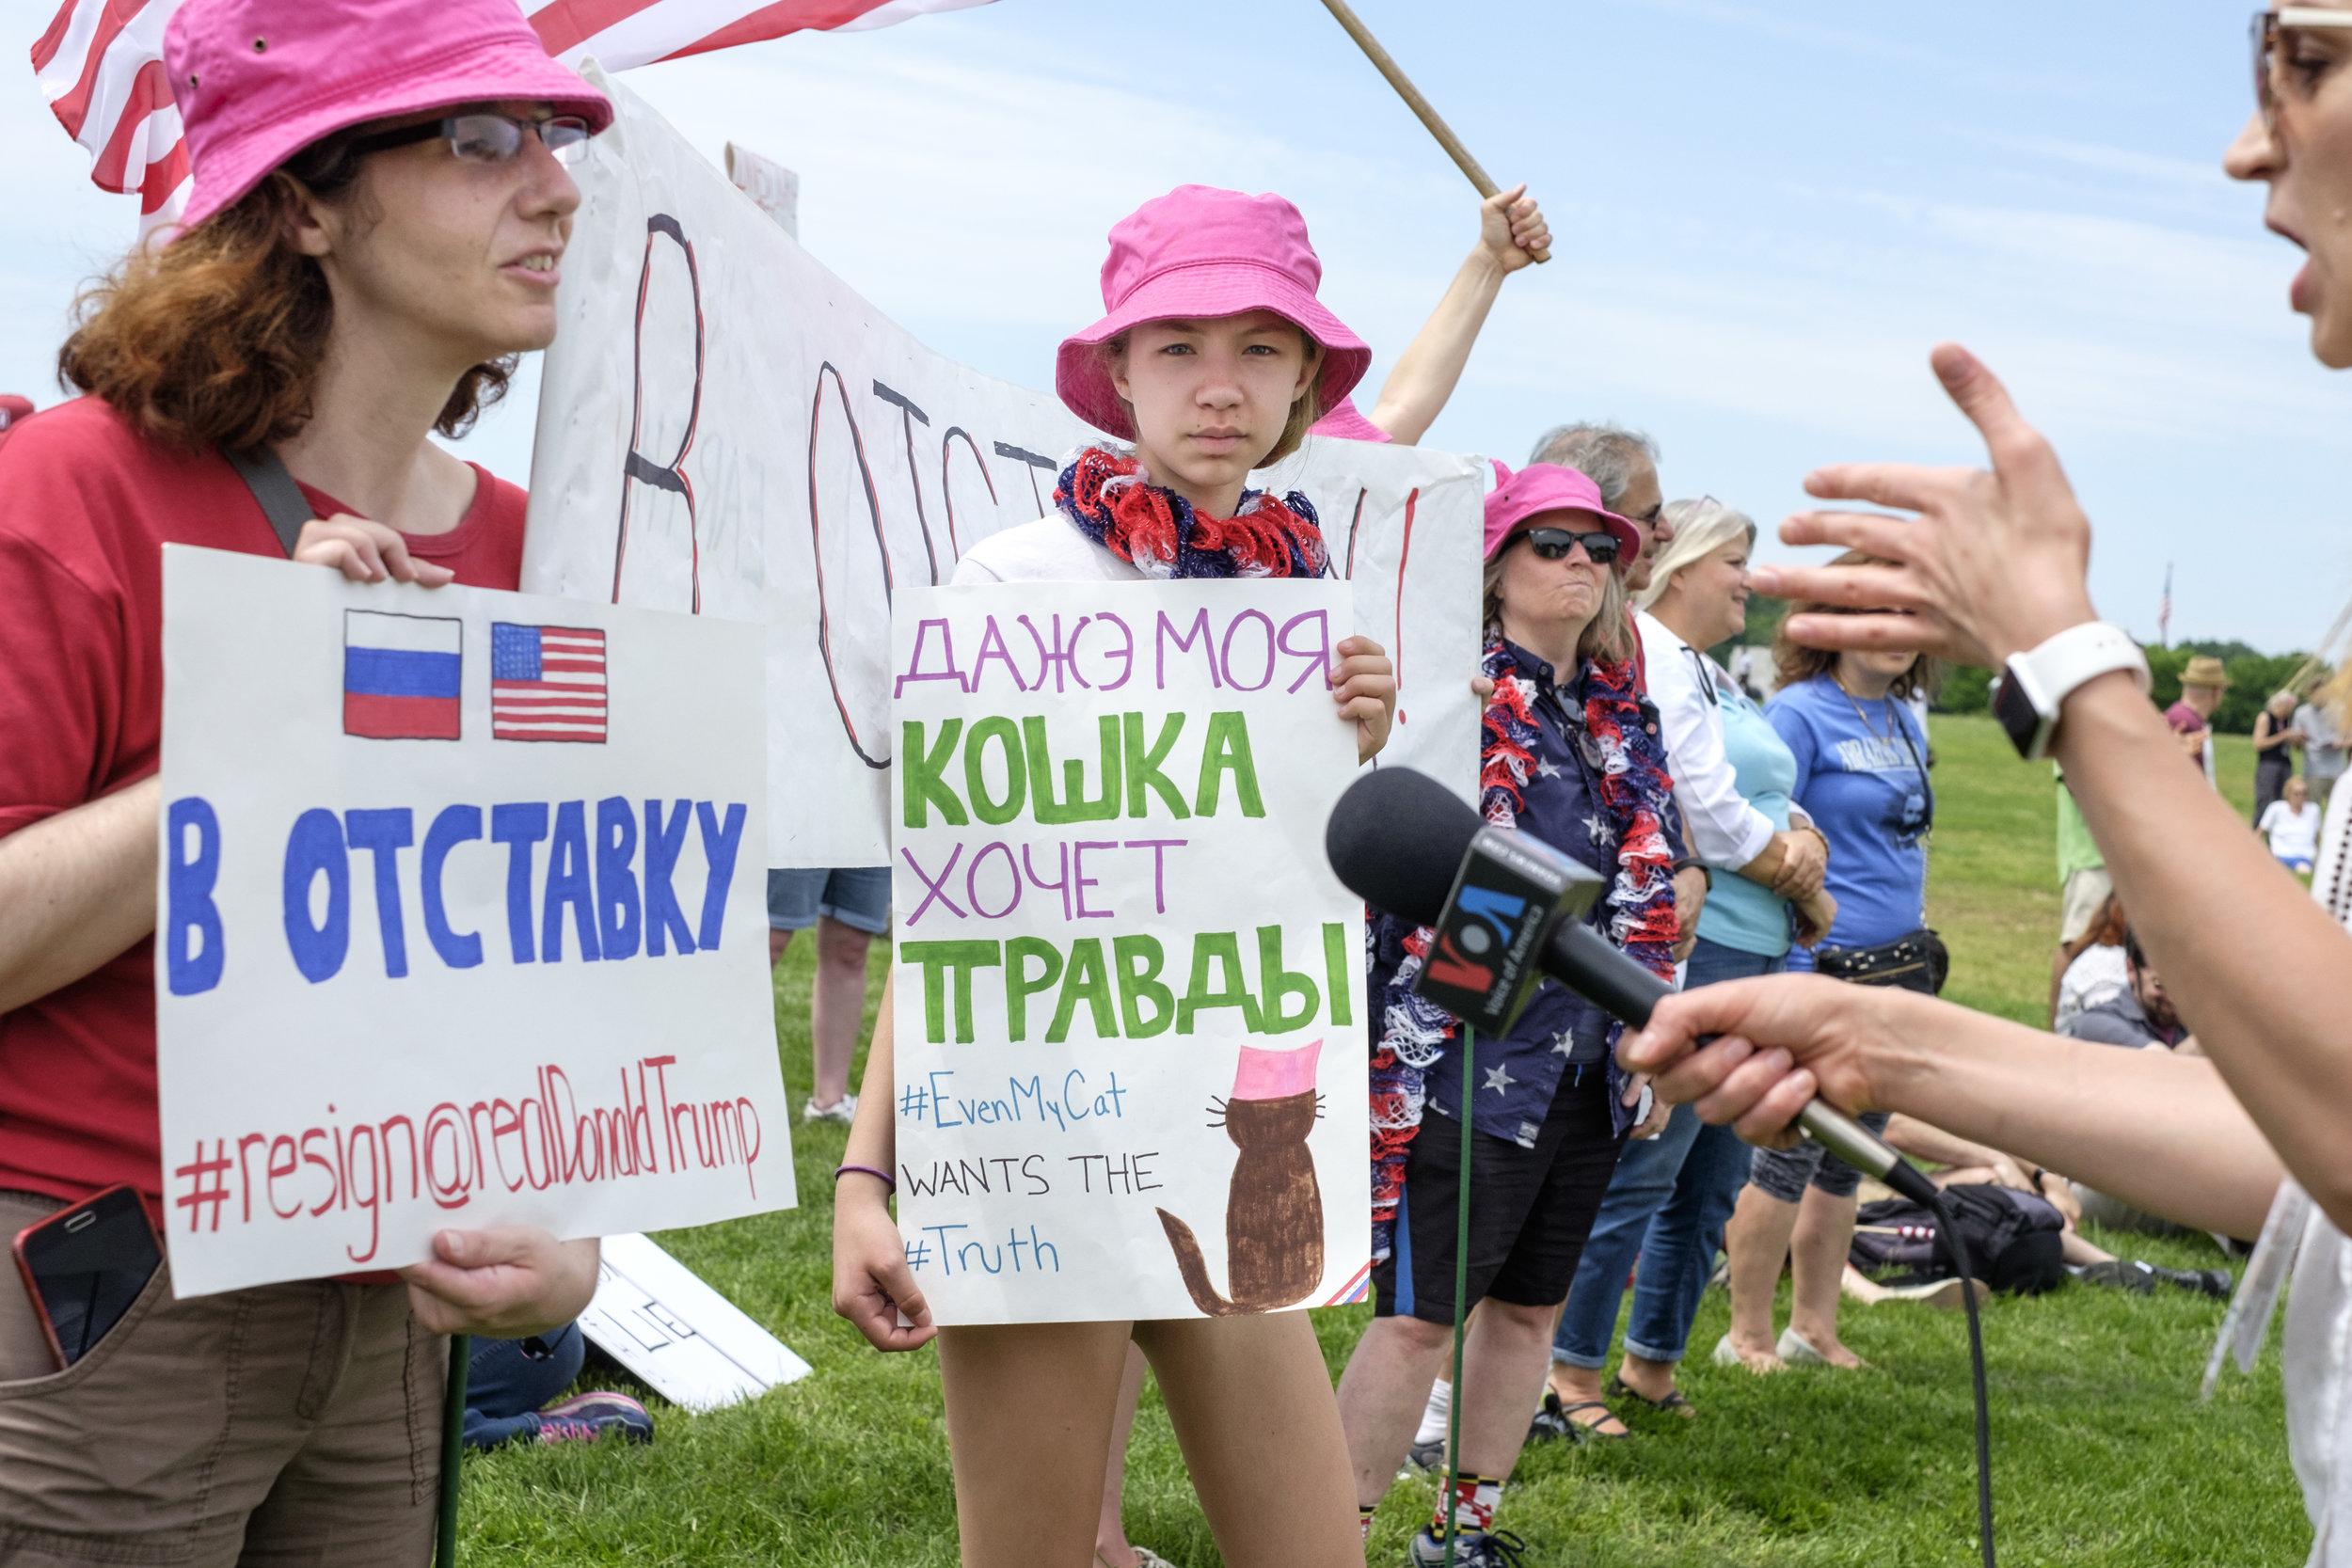 """Maddie Smith of Maryland, center, is seen at the March for Truth DC rally held on the National Mall on Saturday, June 3, 2017 in Washington, DC. When asked why she attended the protest she said simply, """"I'm pro-Truth."""" Her sign, written in both Russian and English, states """"Even My Cat Wants the Truth."""""""